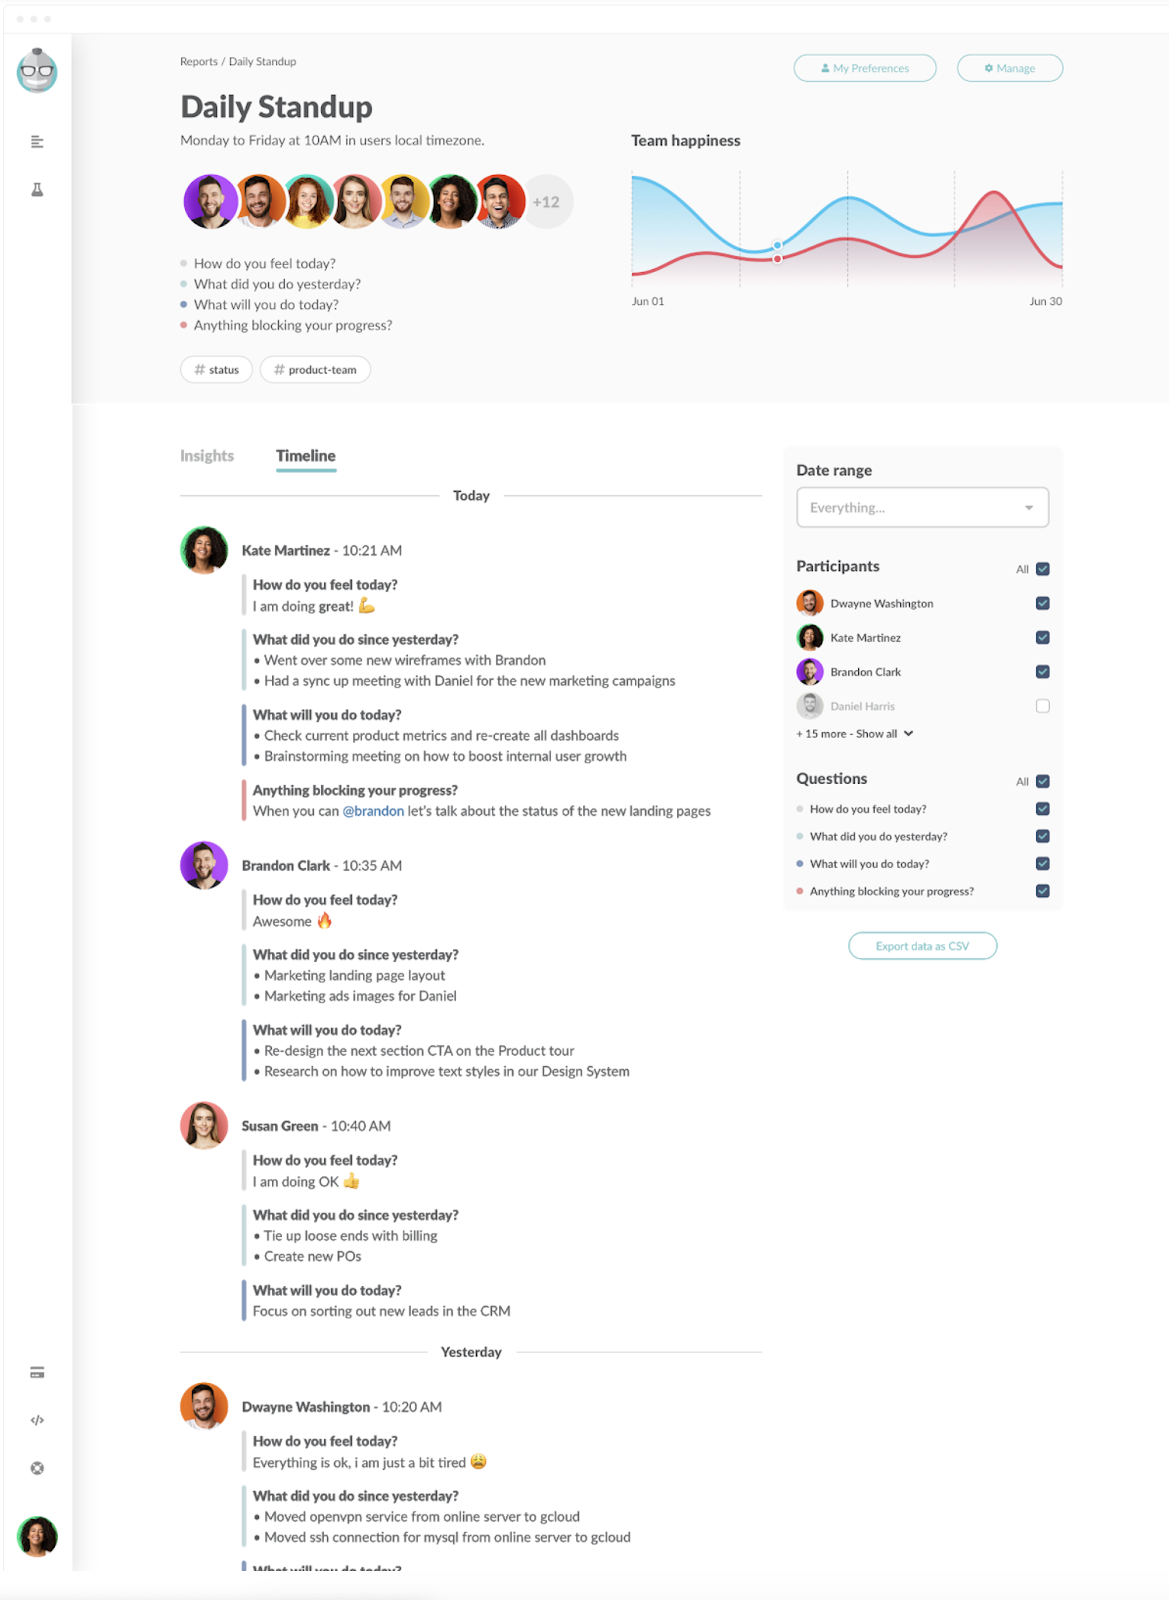 Daily Standup results: Insights, timeline, team happiness, responses, dates/ etc.